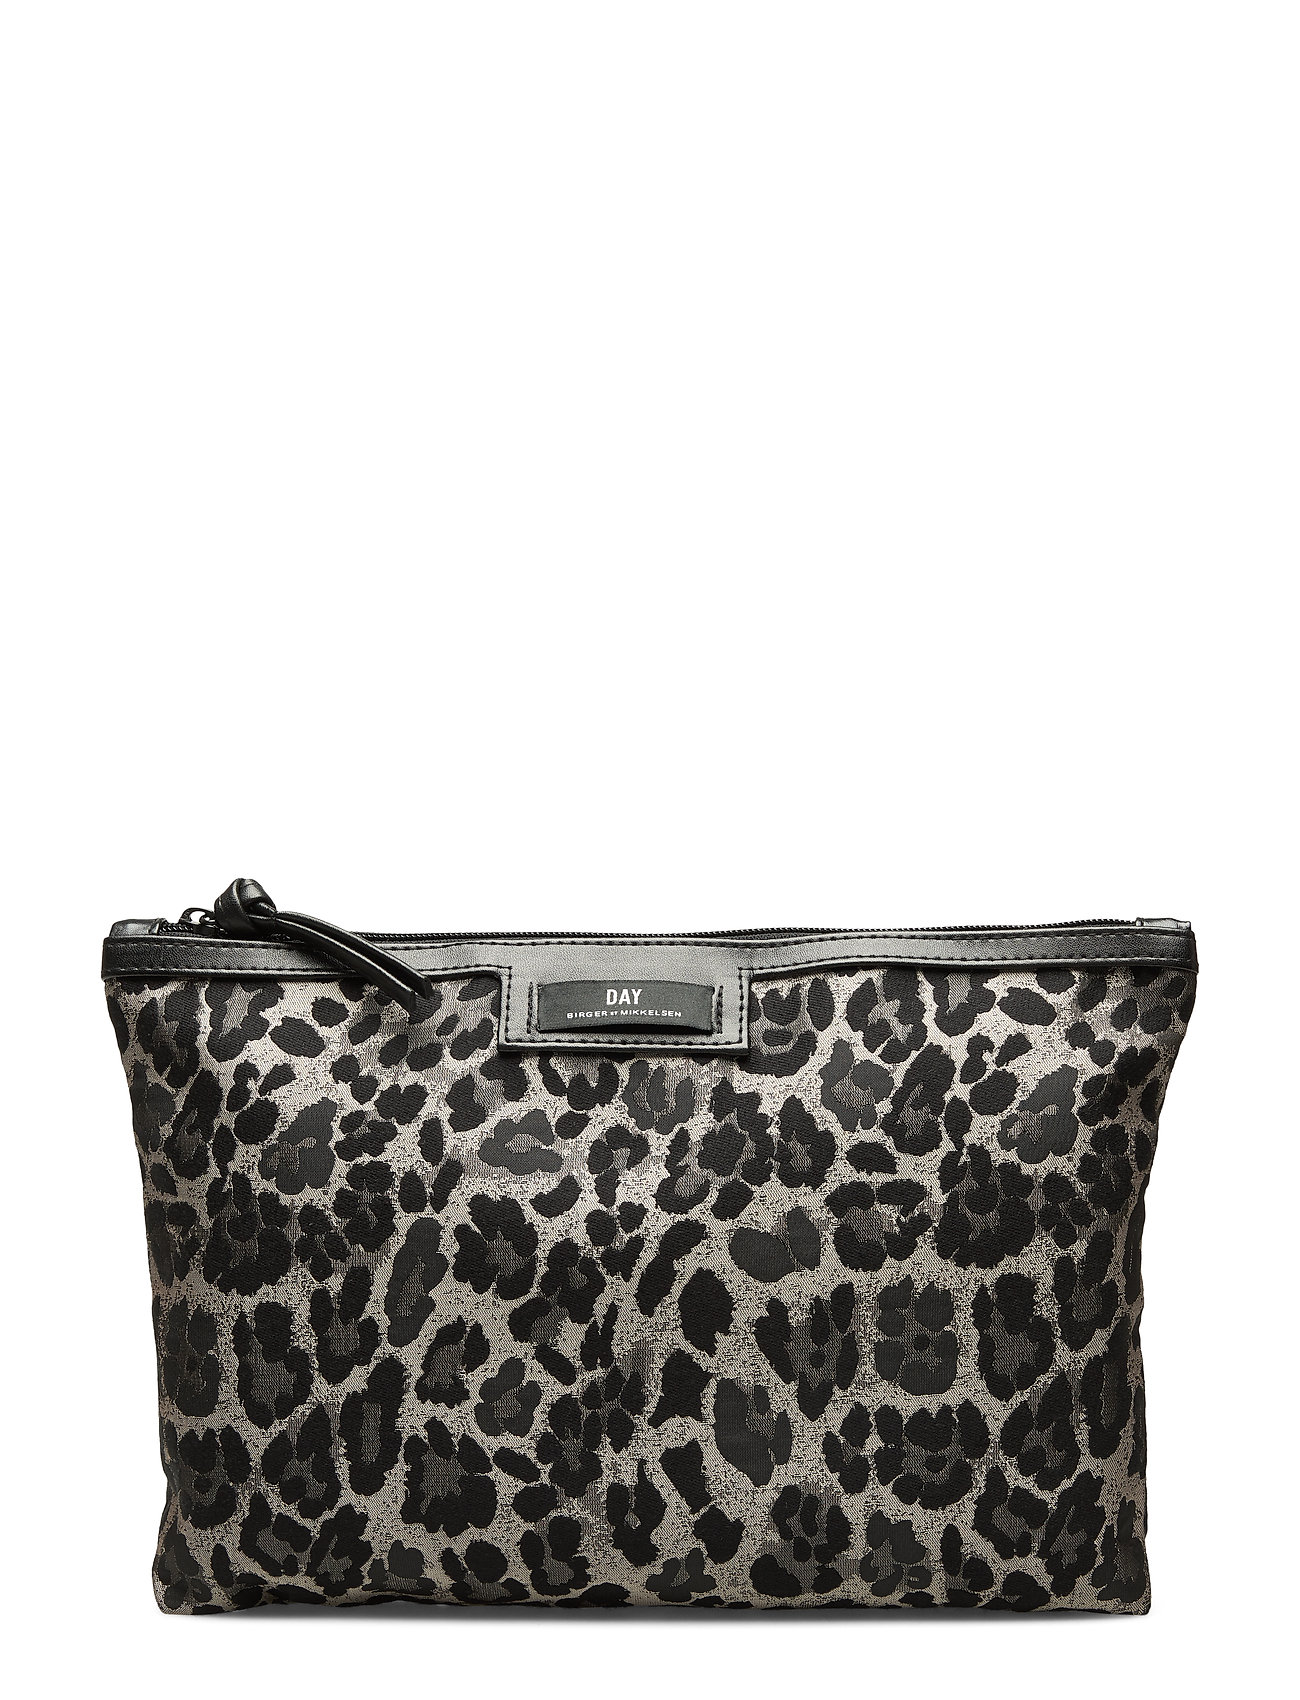 DAY et Day Gweneth Leopard Small - SILVER